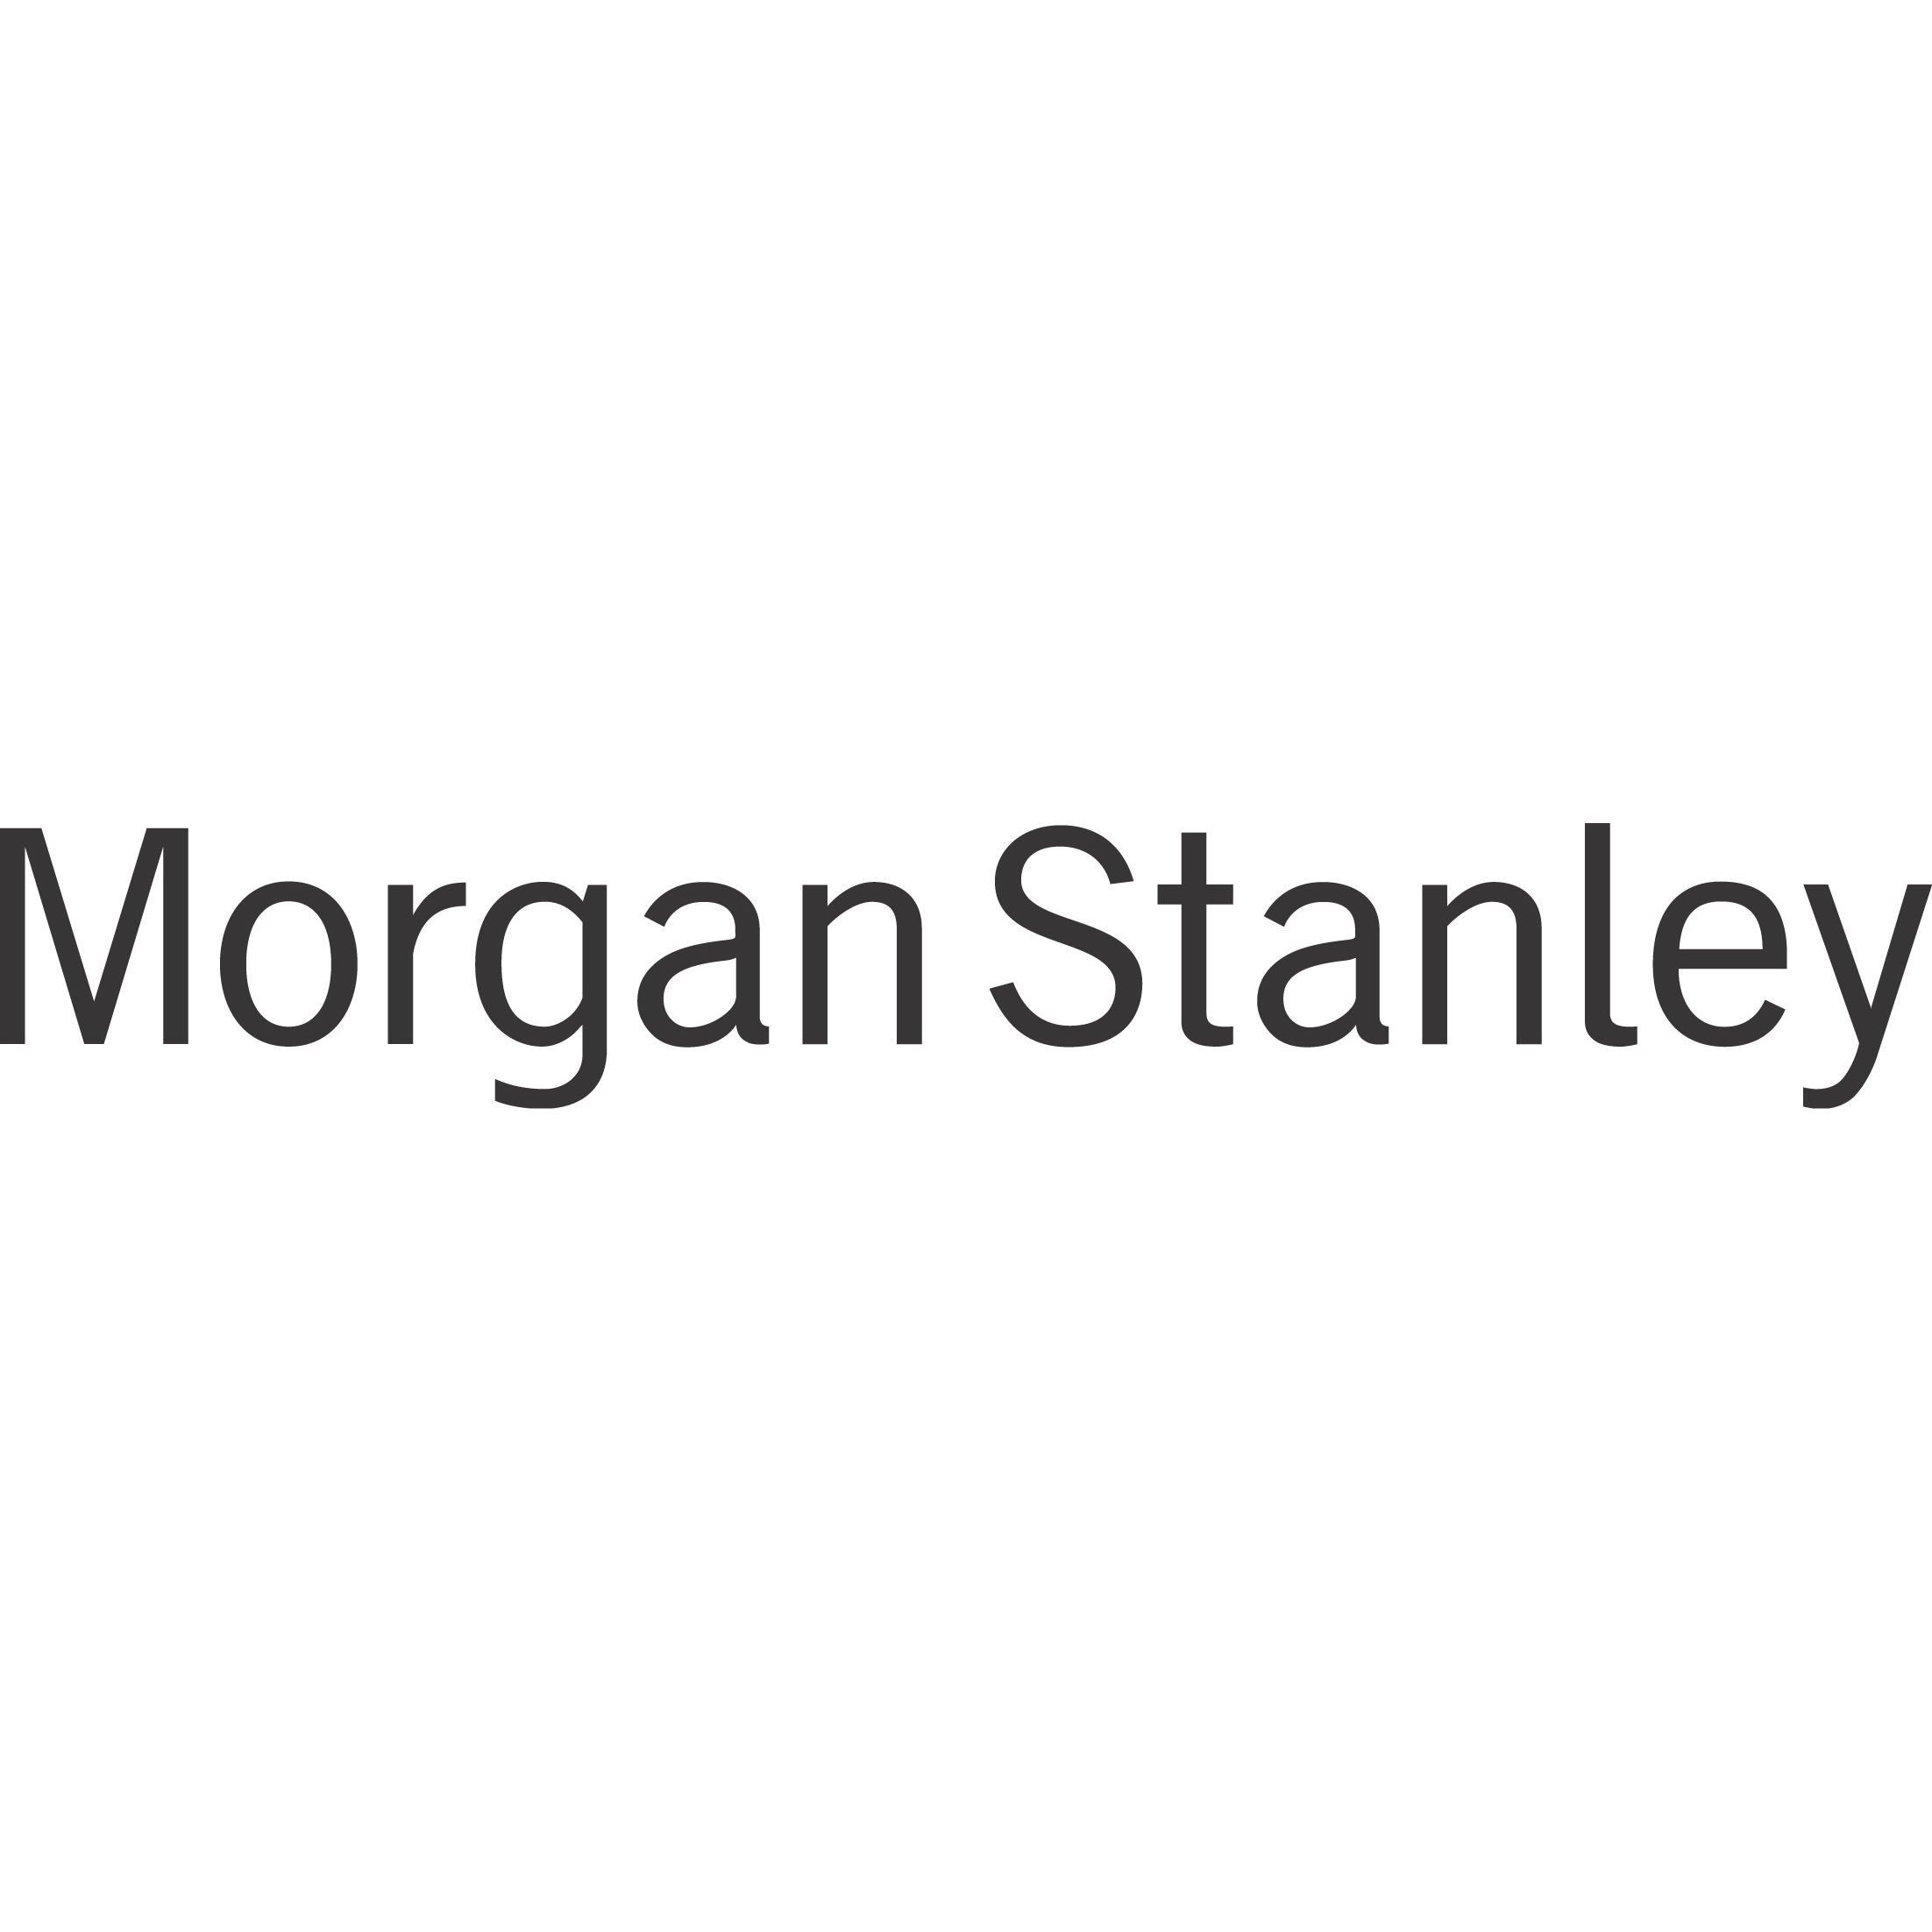 Jerry W Rohen - Morgan Stanley | Financial Advisor in Grand Rapids,Michigan